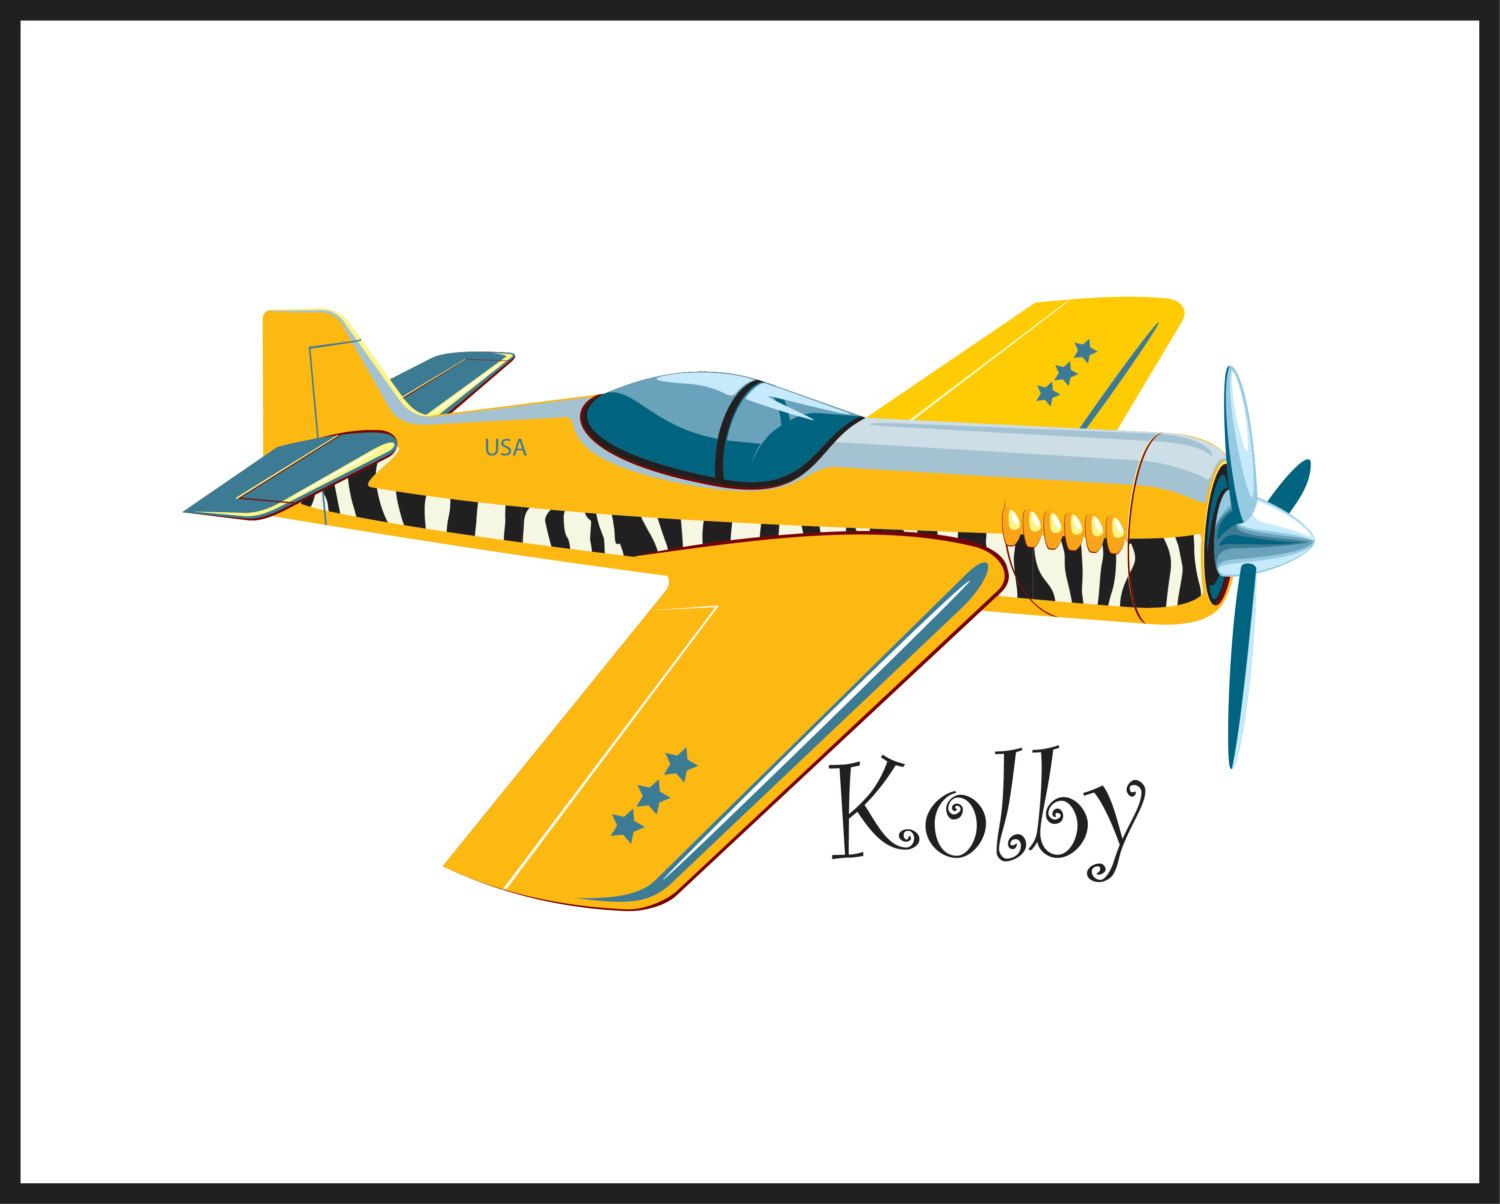 Childrens Airplane Art Print For Boys Personalized Kids Wall Yellow Black Aviation Prints Room Decor 14 00 Via Etsy